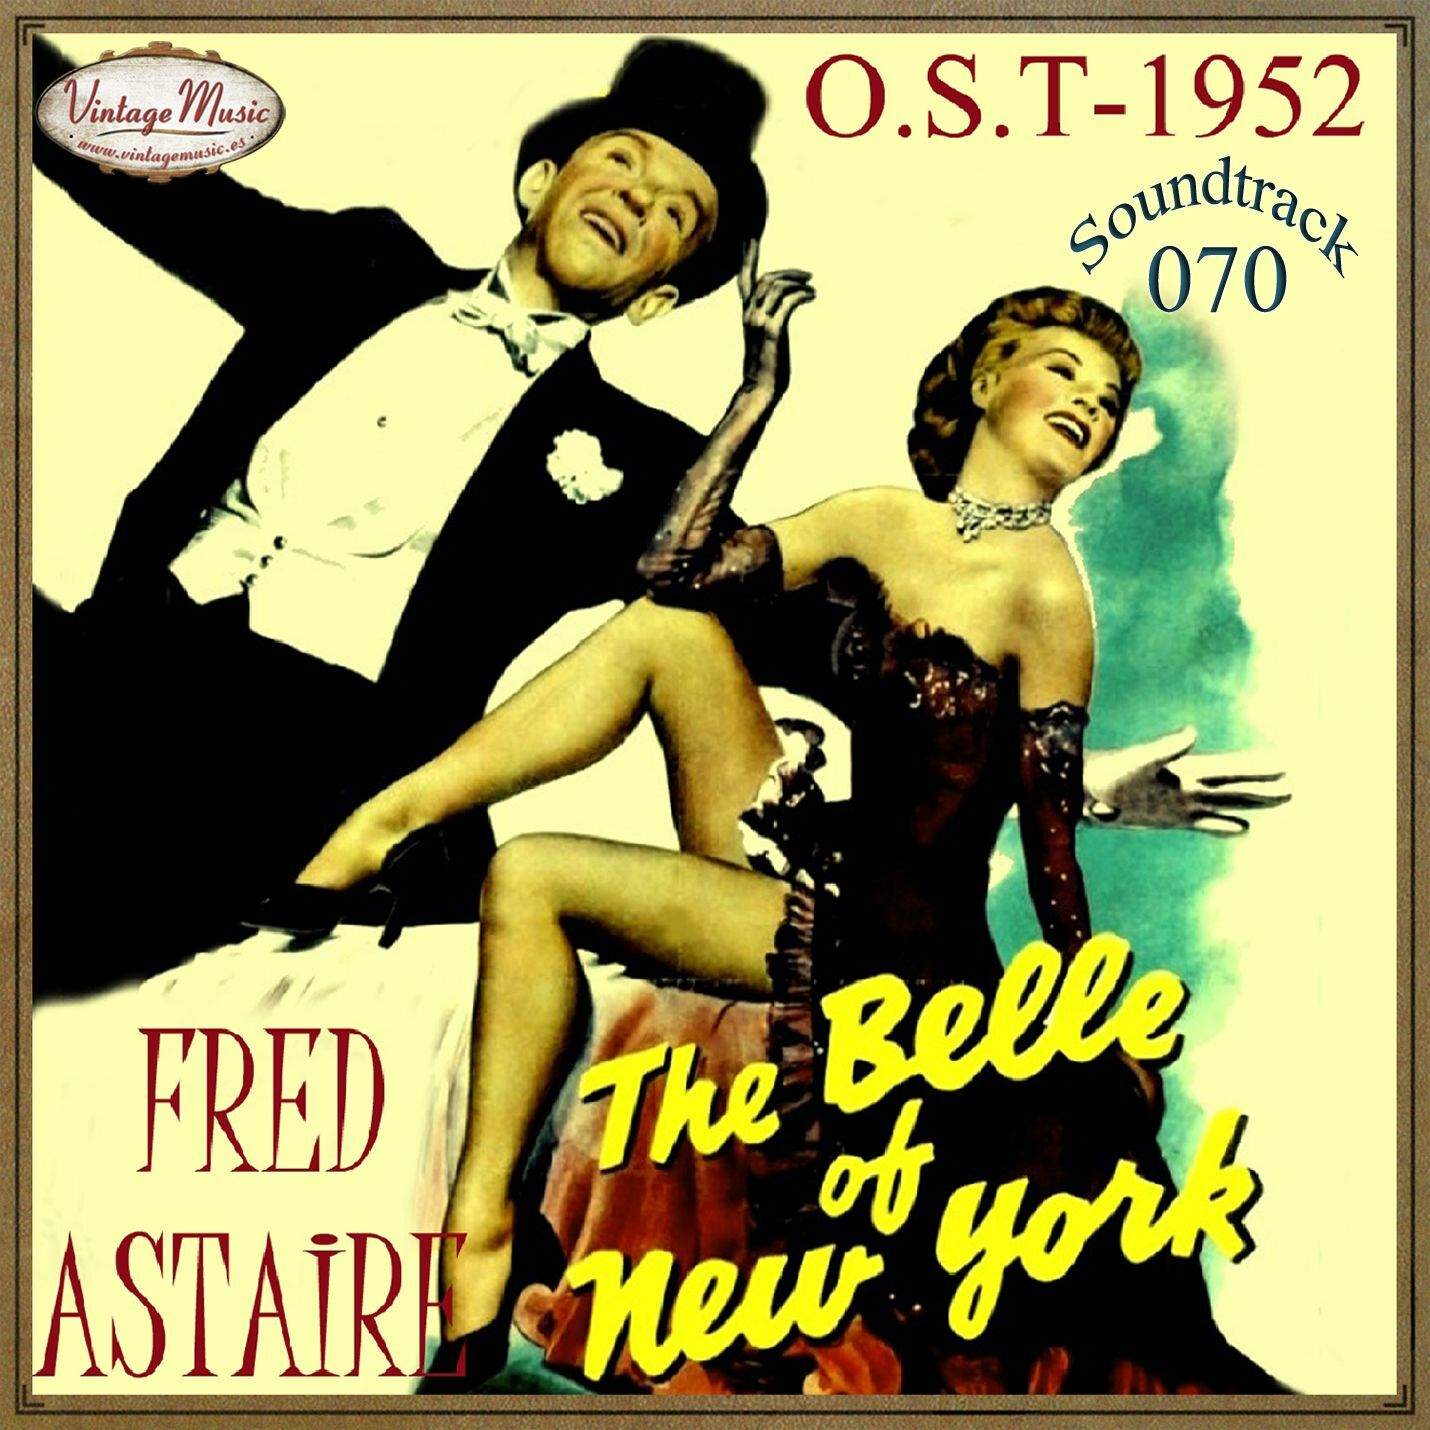 Varios Artistas THE BELLE OF NEW YORK Soundtrack CD 70/100 - O.S.T 1952 Fred Astaire Anita Ellis